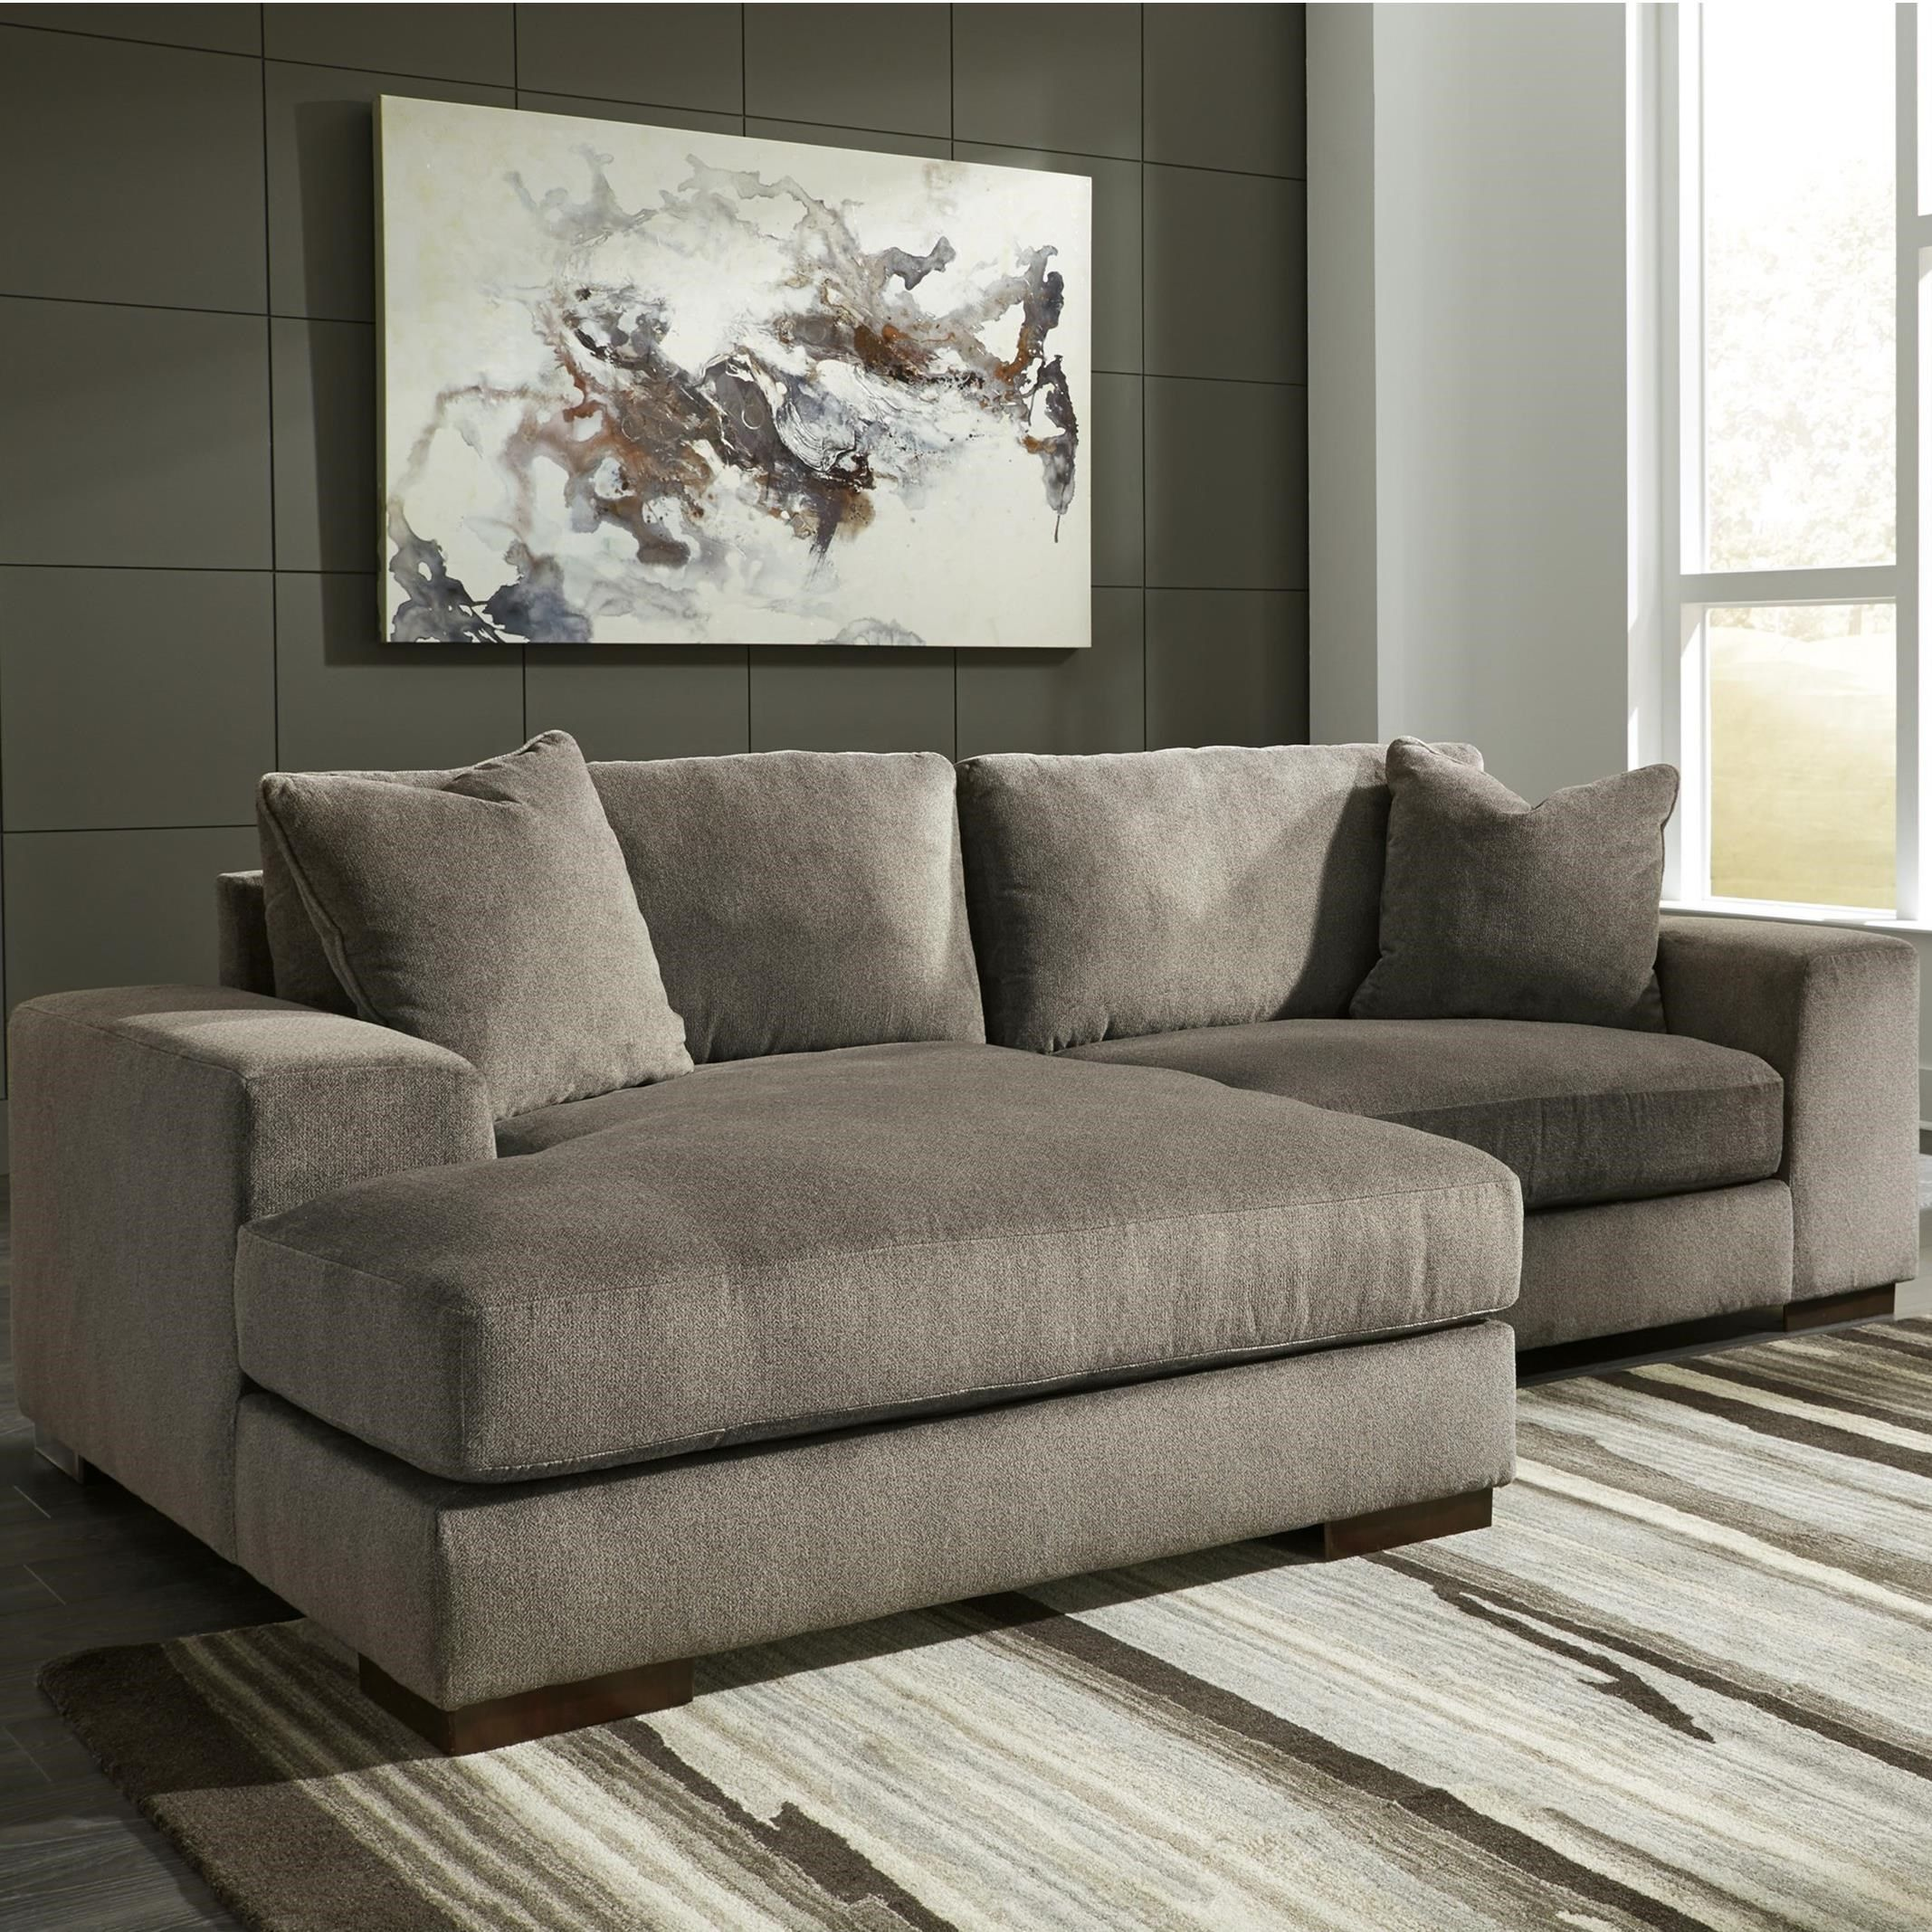 Manzani 2 Piece Sectional By Benchcraft At Crowley Furniture